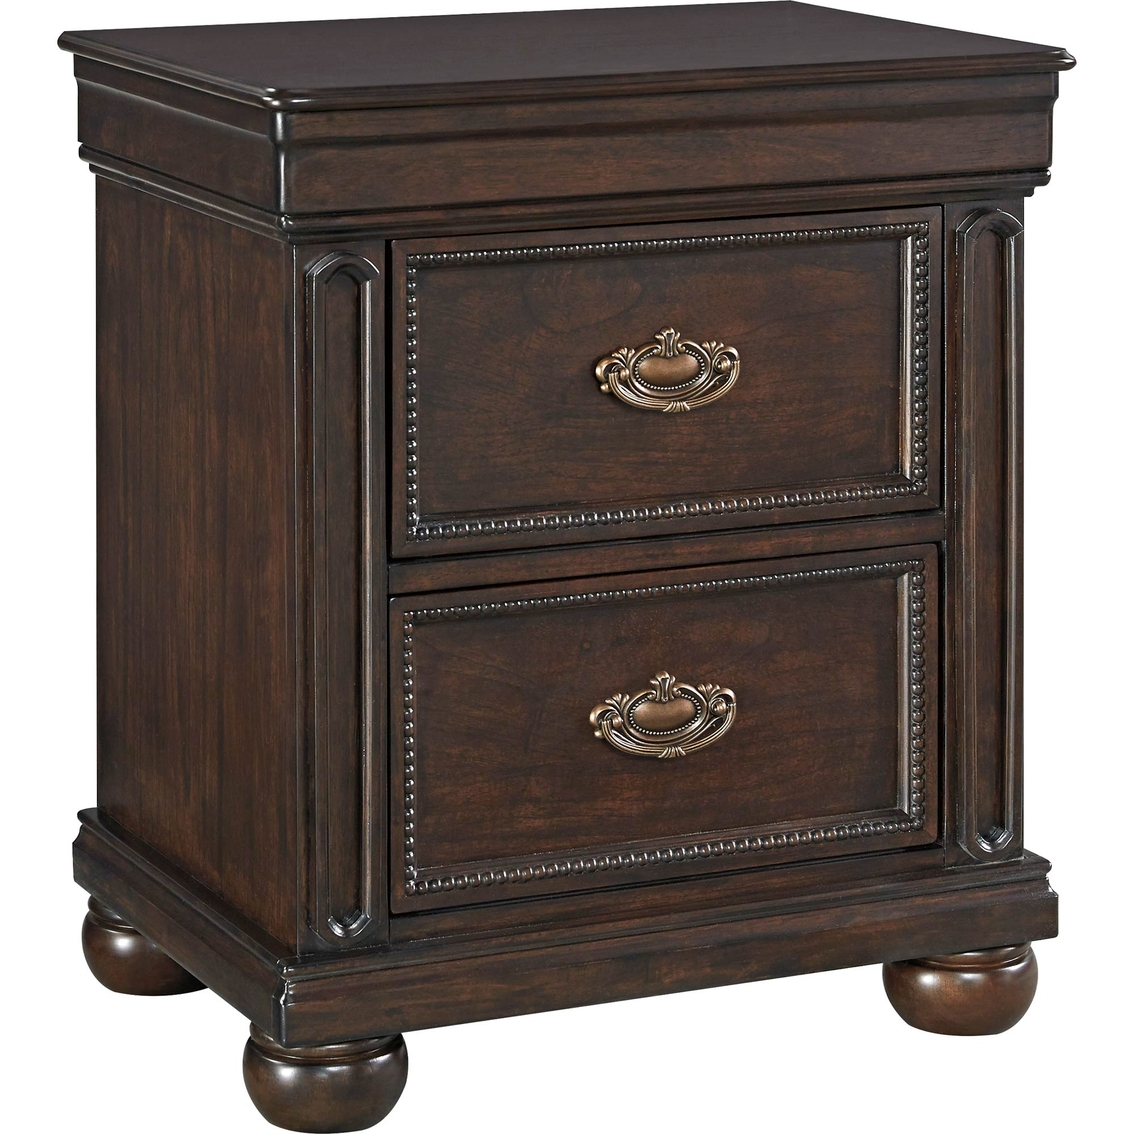 Signature Design By Ashley Moluxy 2 Drawer Nightstand Nightstands Home Appliances Shop